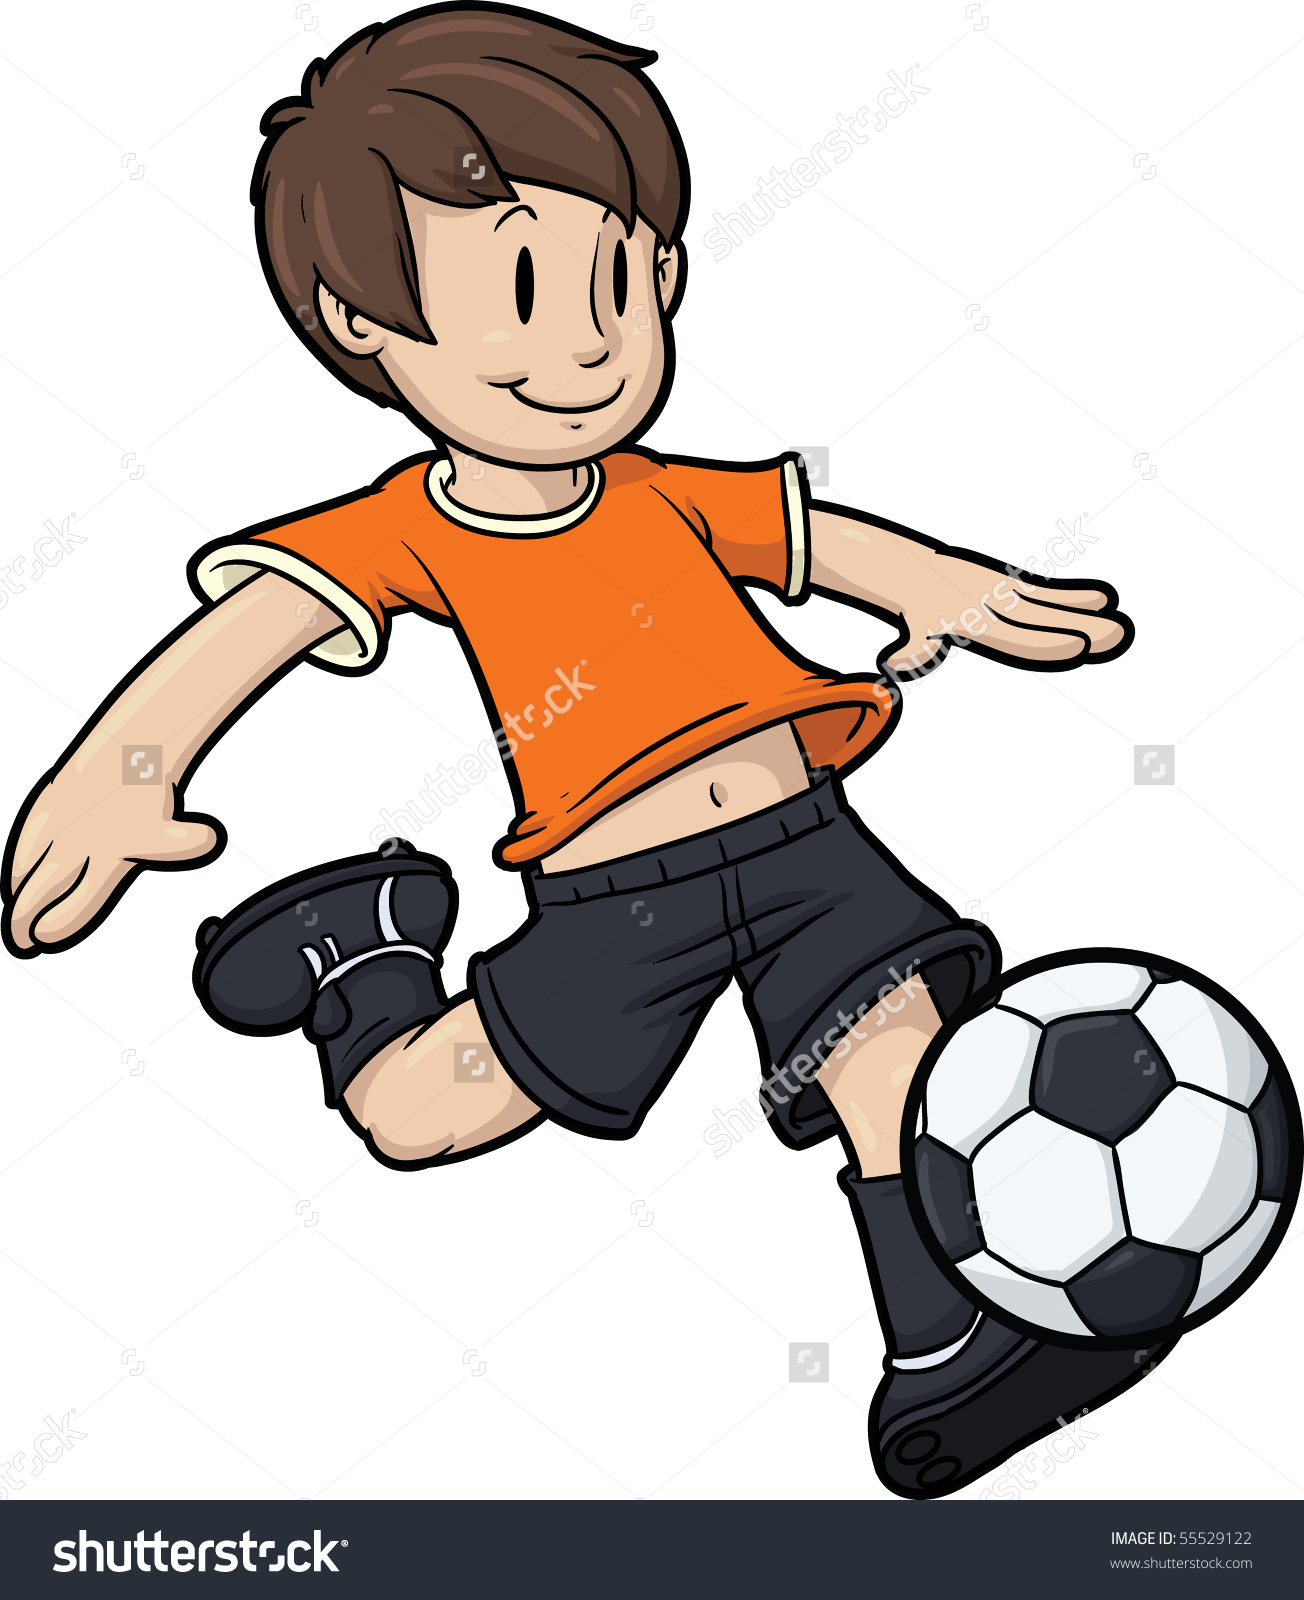 Cartoon Boy Playing Soccer Kid Soccer Stock Vector 55529122.